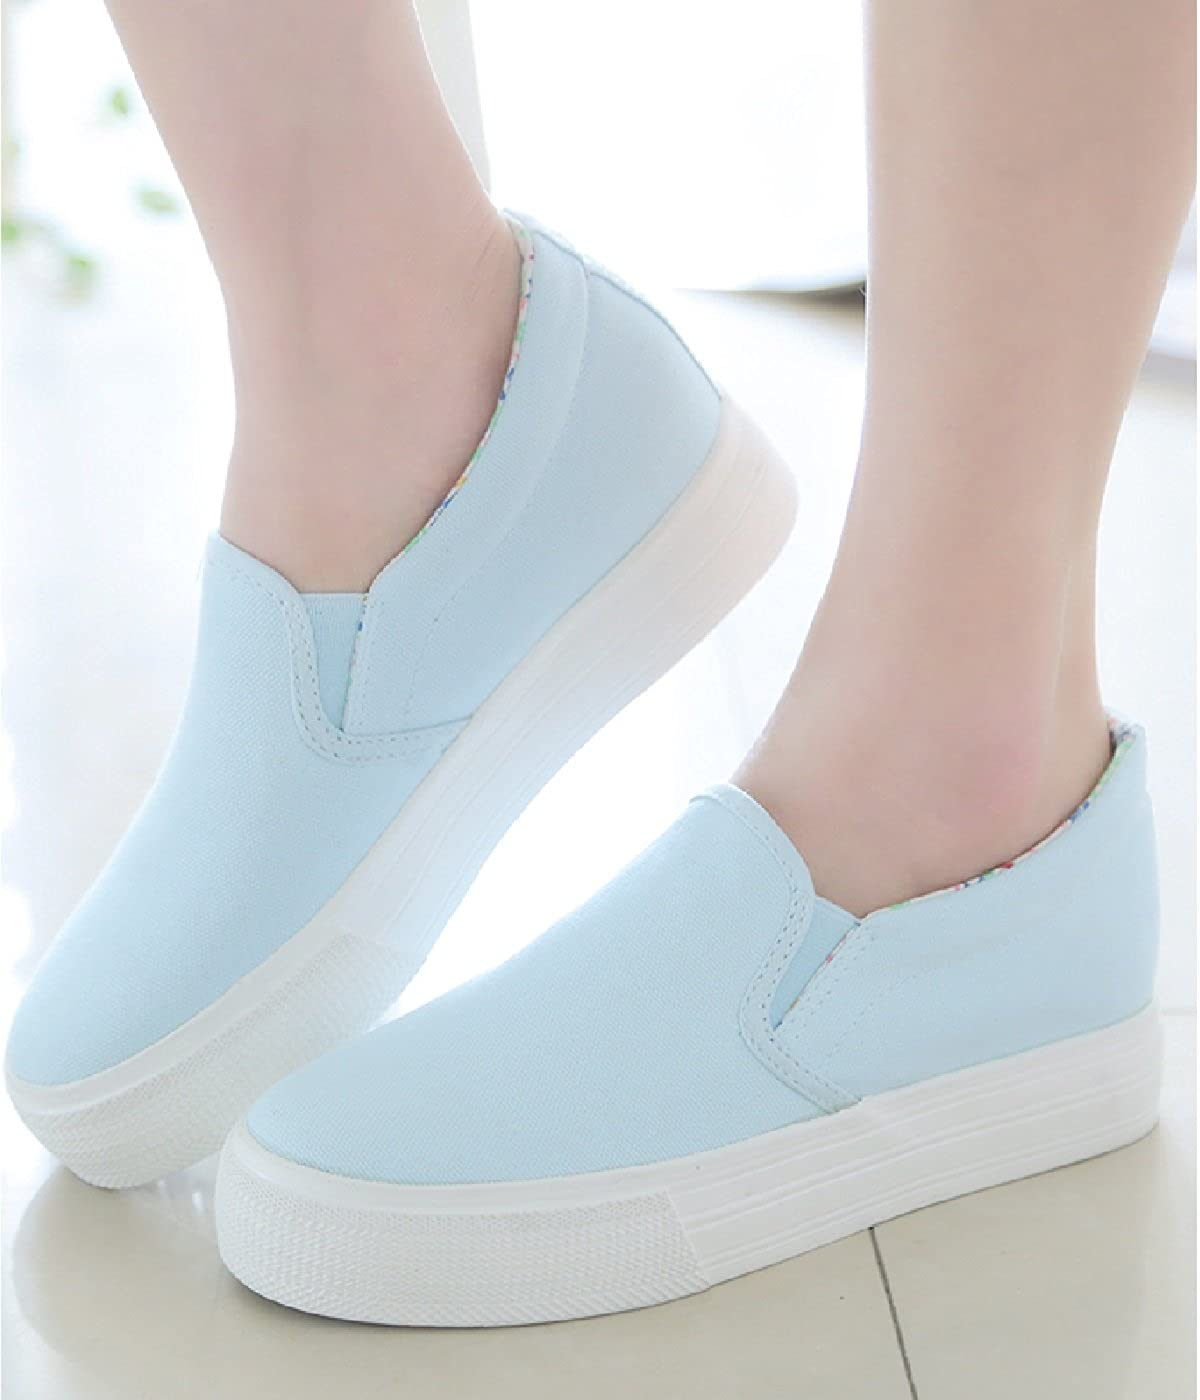 Amazon.com: Womens Sneakers Slip On Platform White Canvas Fashion Casual Shoes Low Cut Flats: Clothing